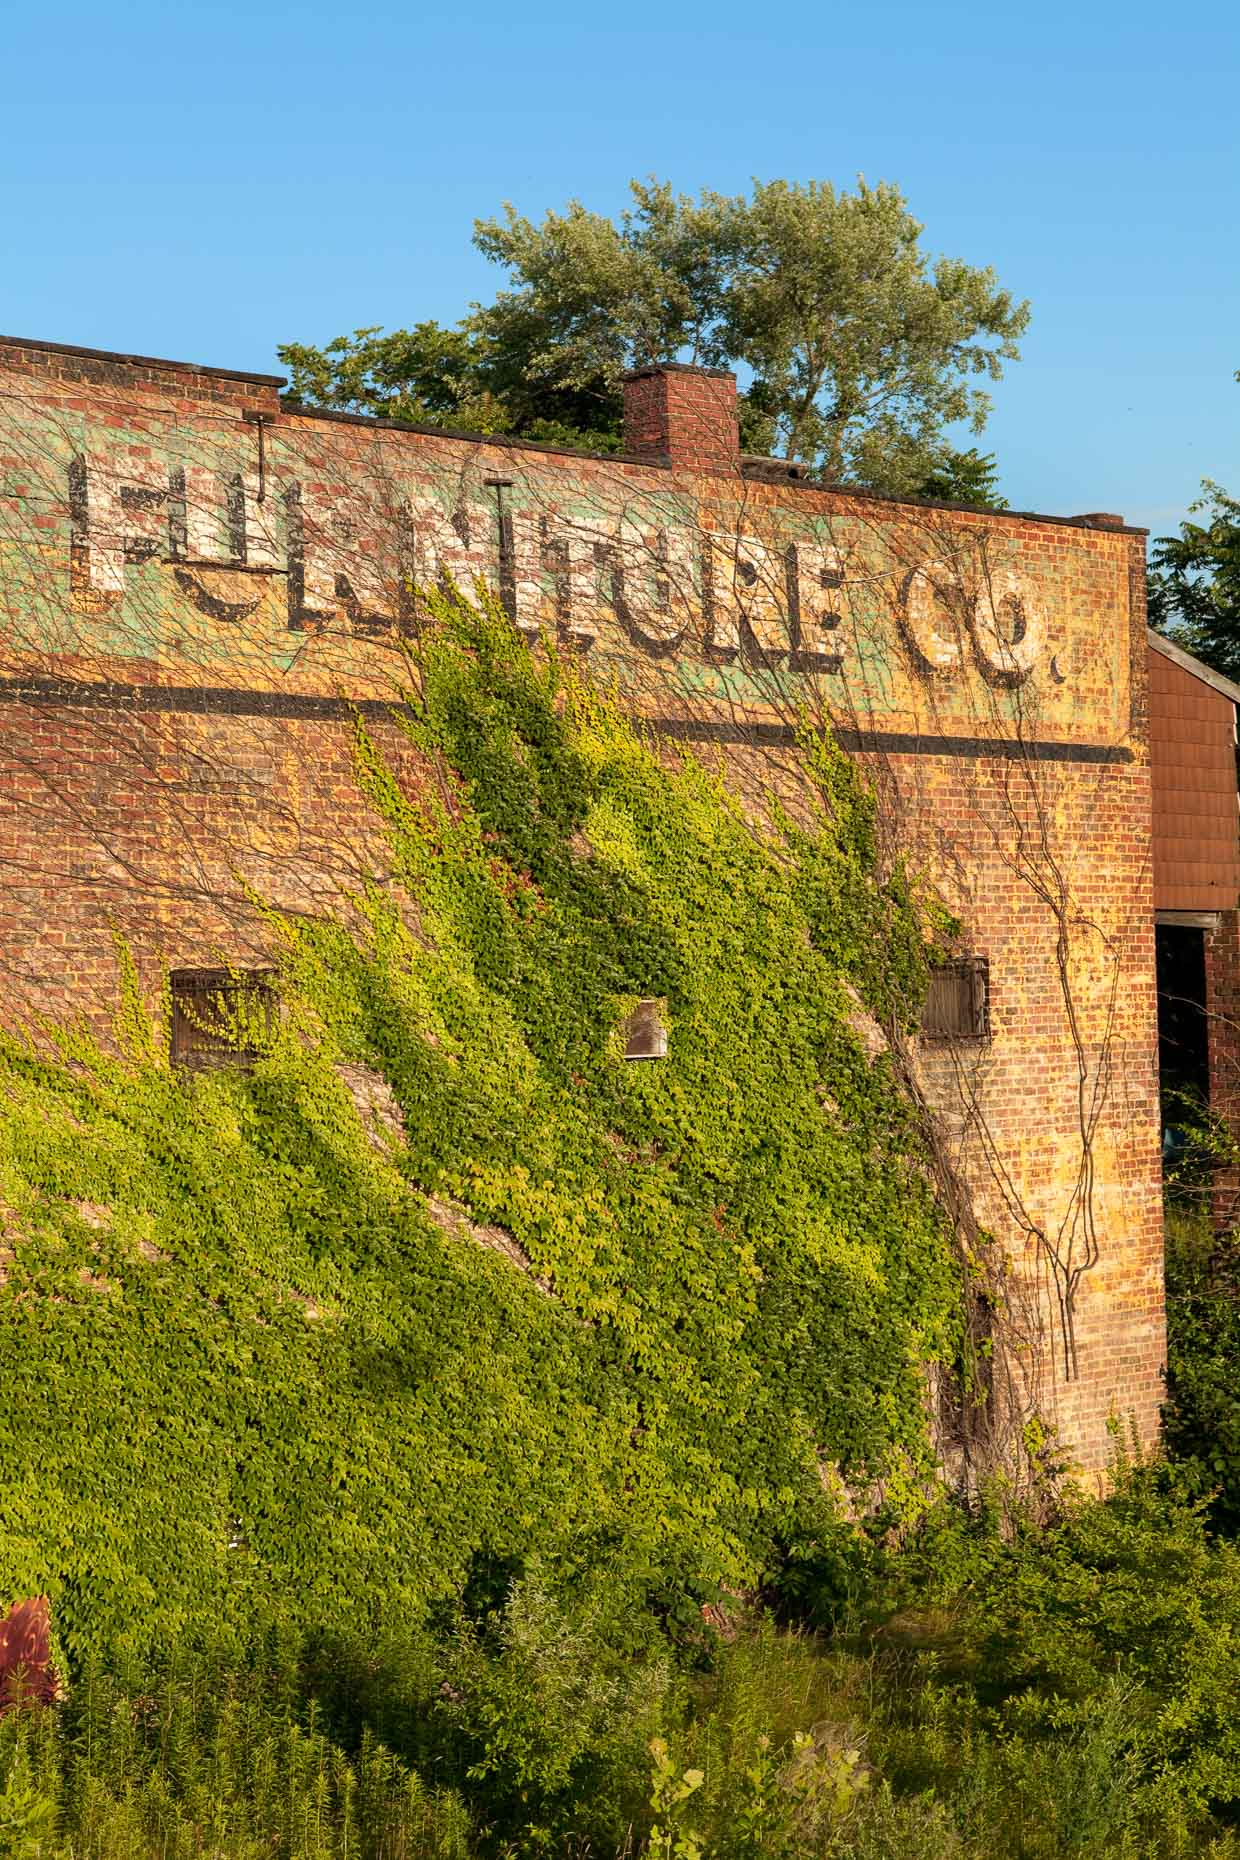 Green vines growing on side of brick building with FURNITURE CO. sign by David Zaitz